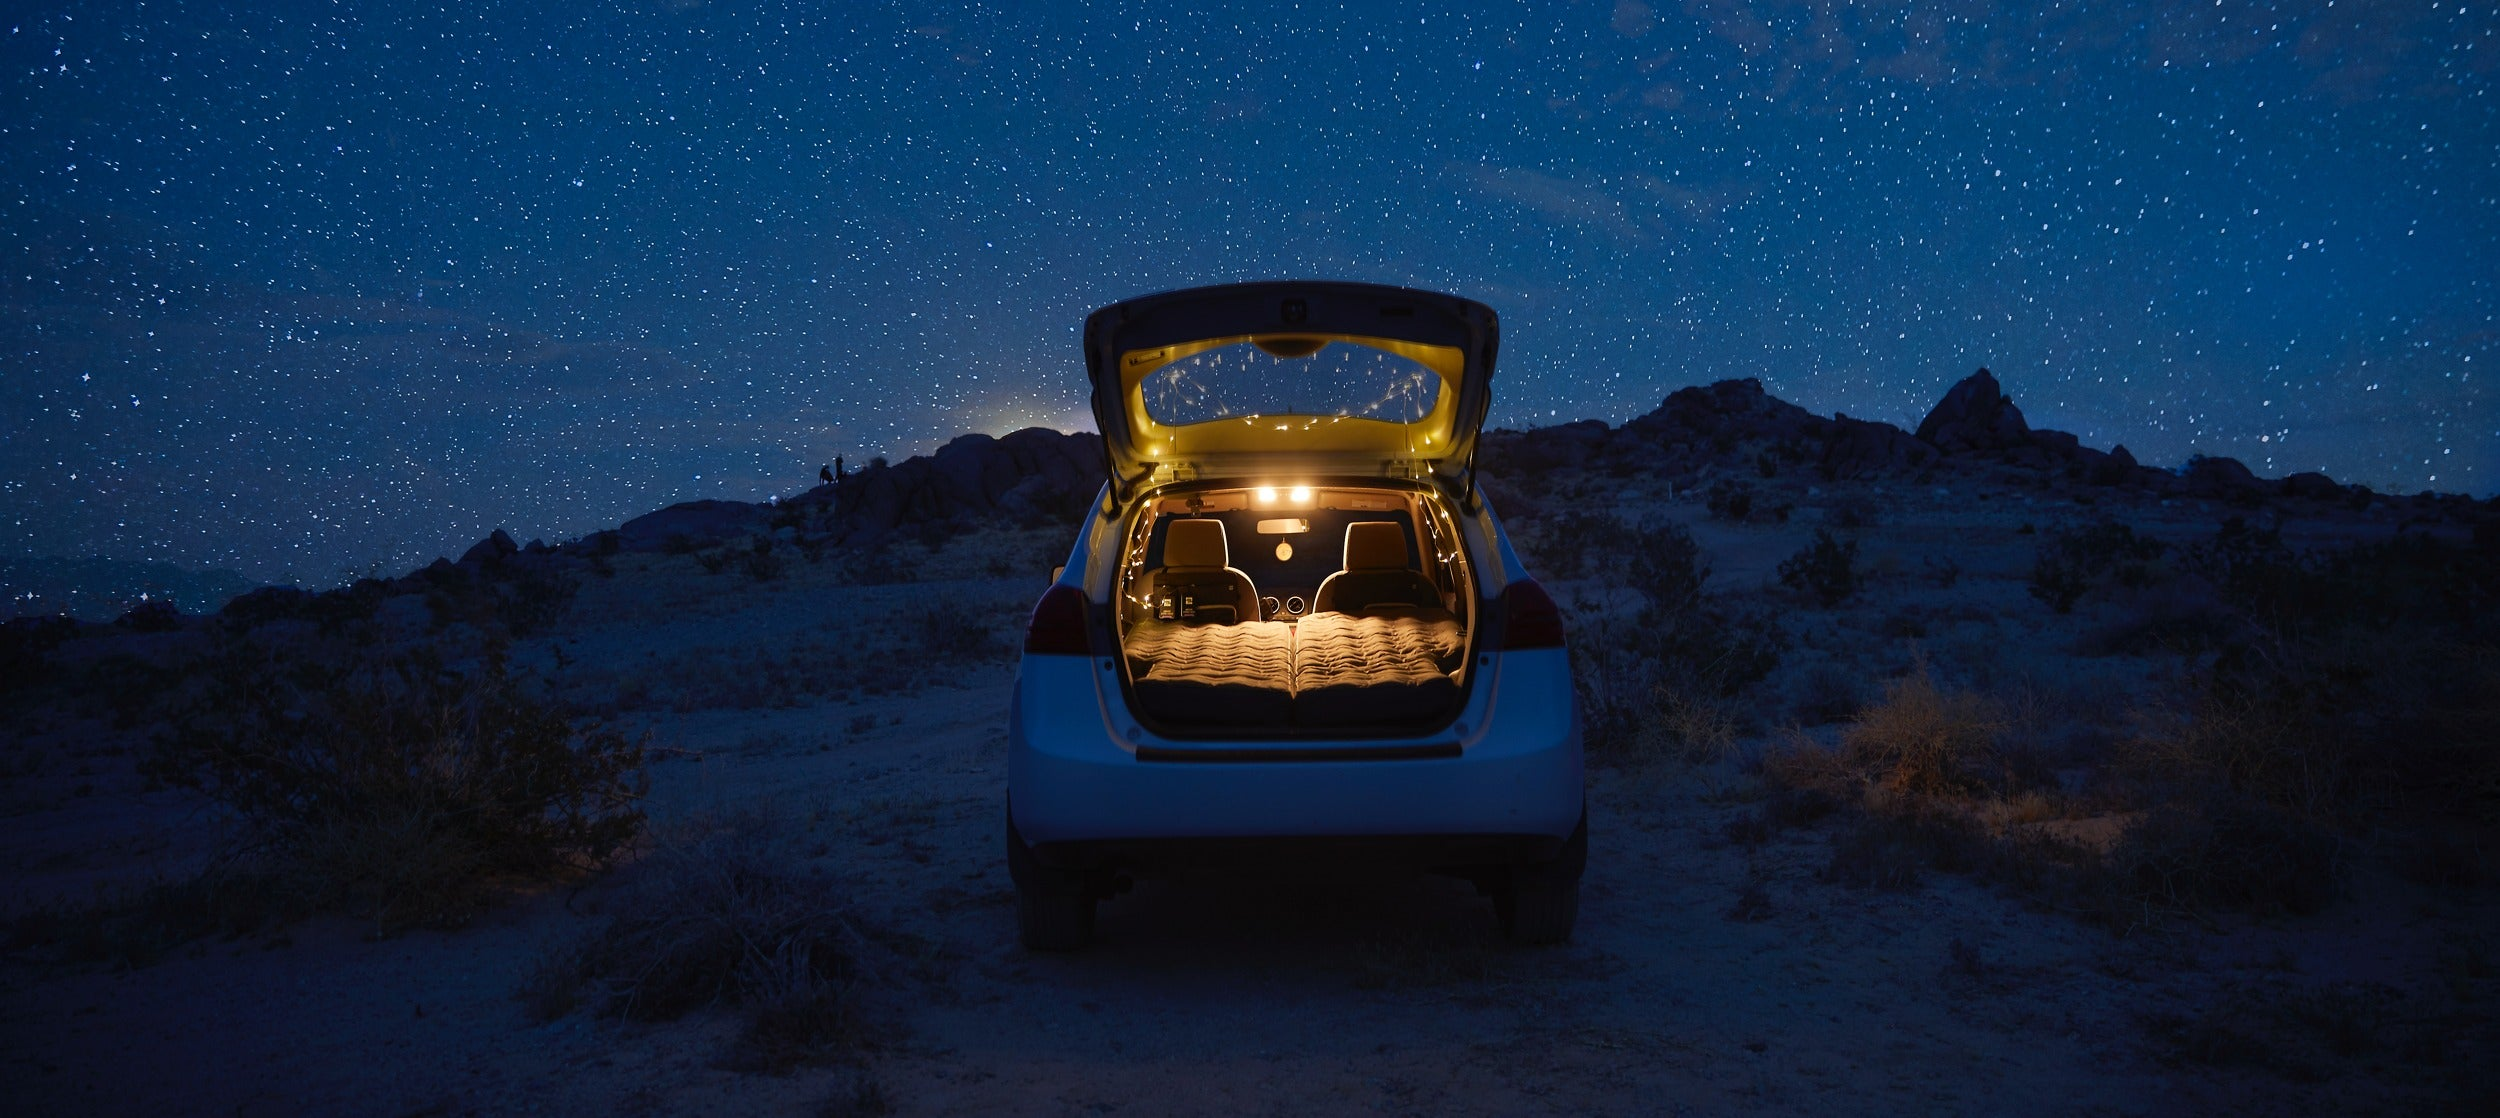 Sleep beneath the stars with Luno Life's comfortable and durable camping air mattress